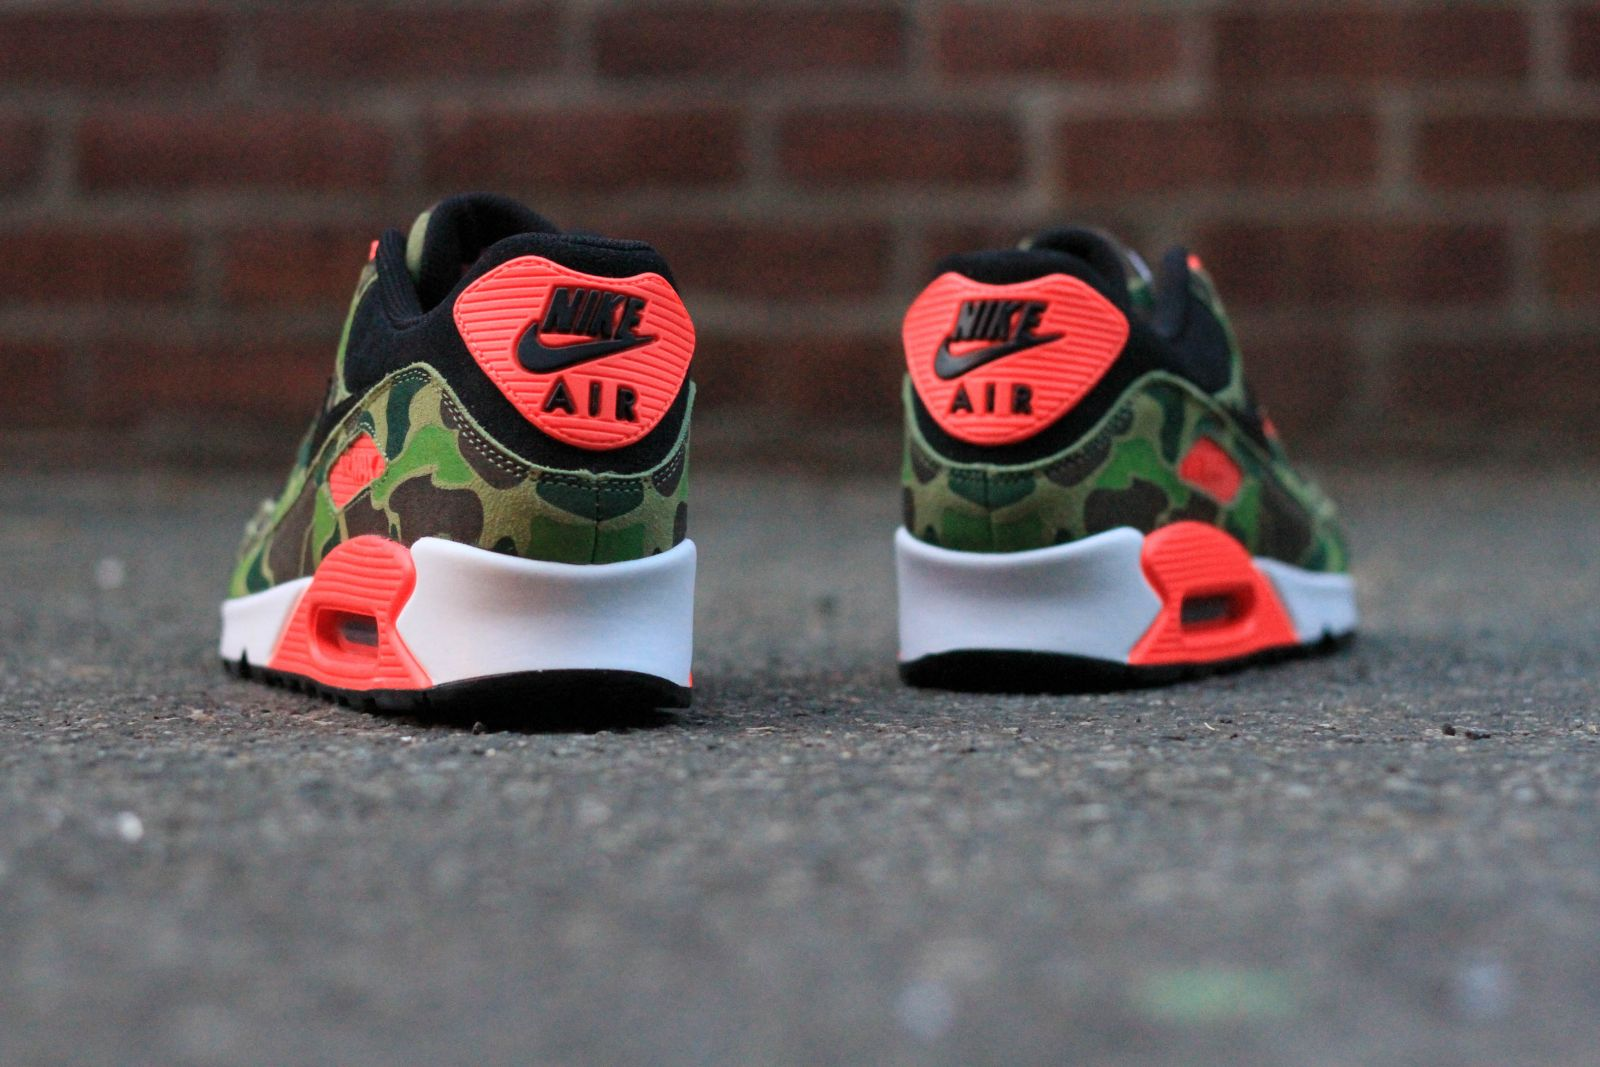 premium selection f22ed 187e9 atmos x Nike Air Max 90  Premium Camo Pack  - Available at Bodega   Sole  Collector